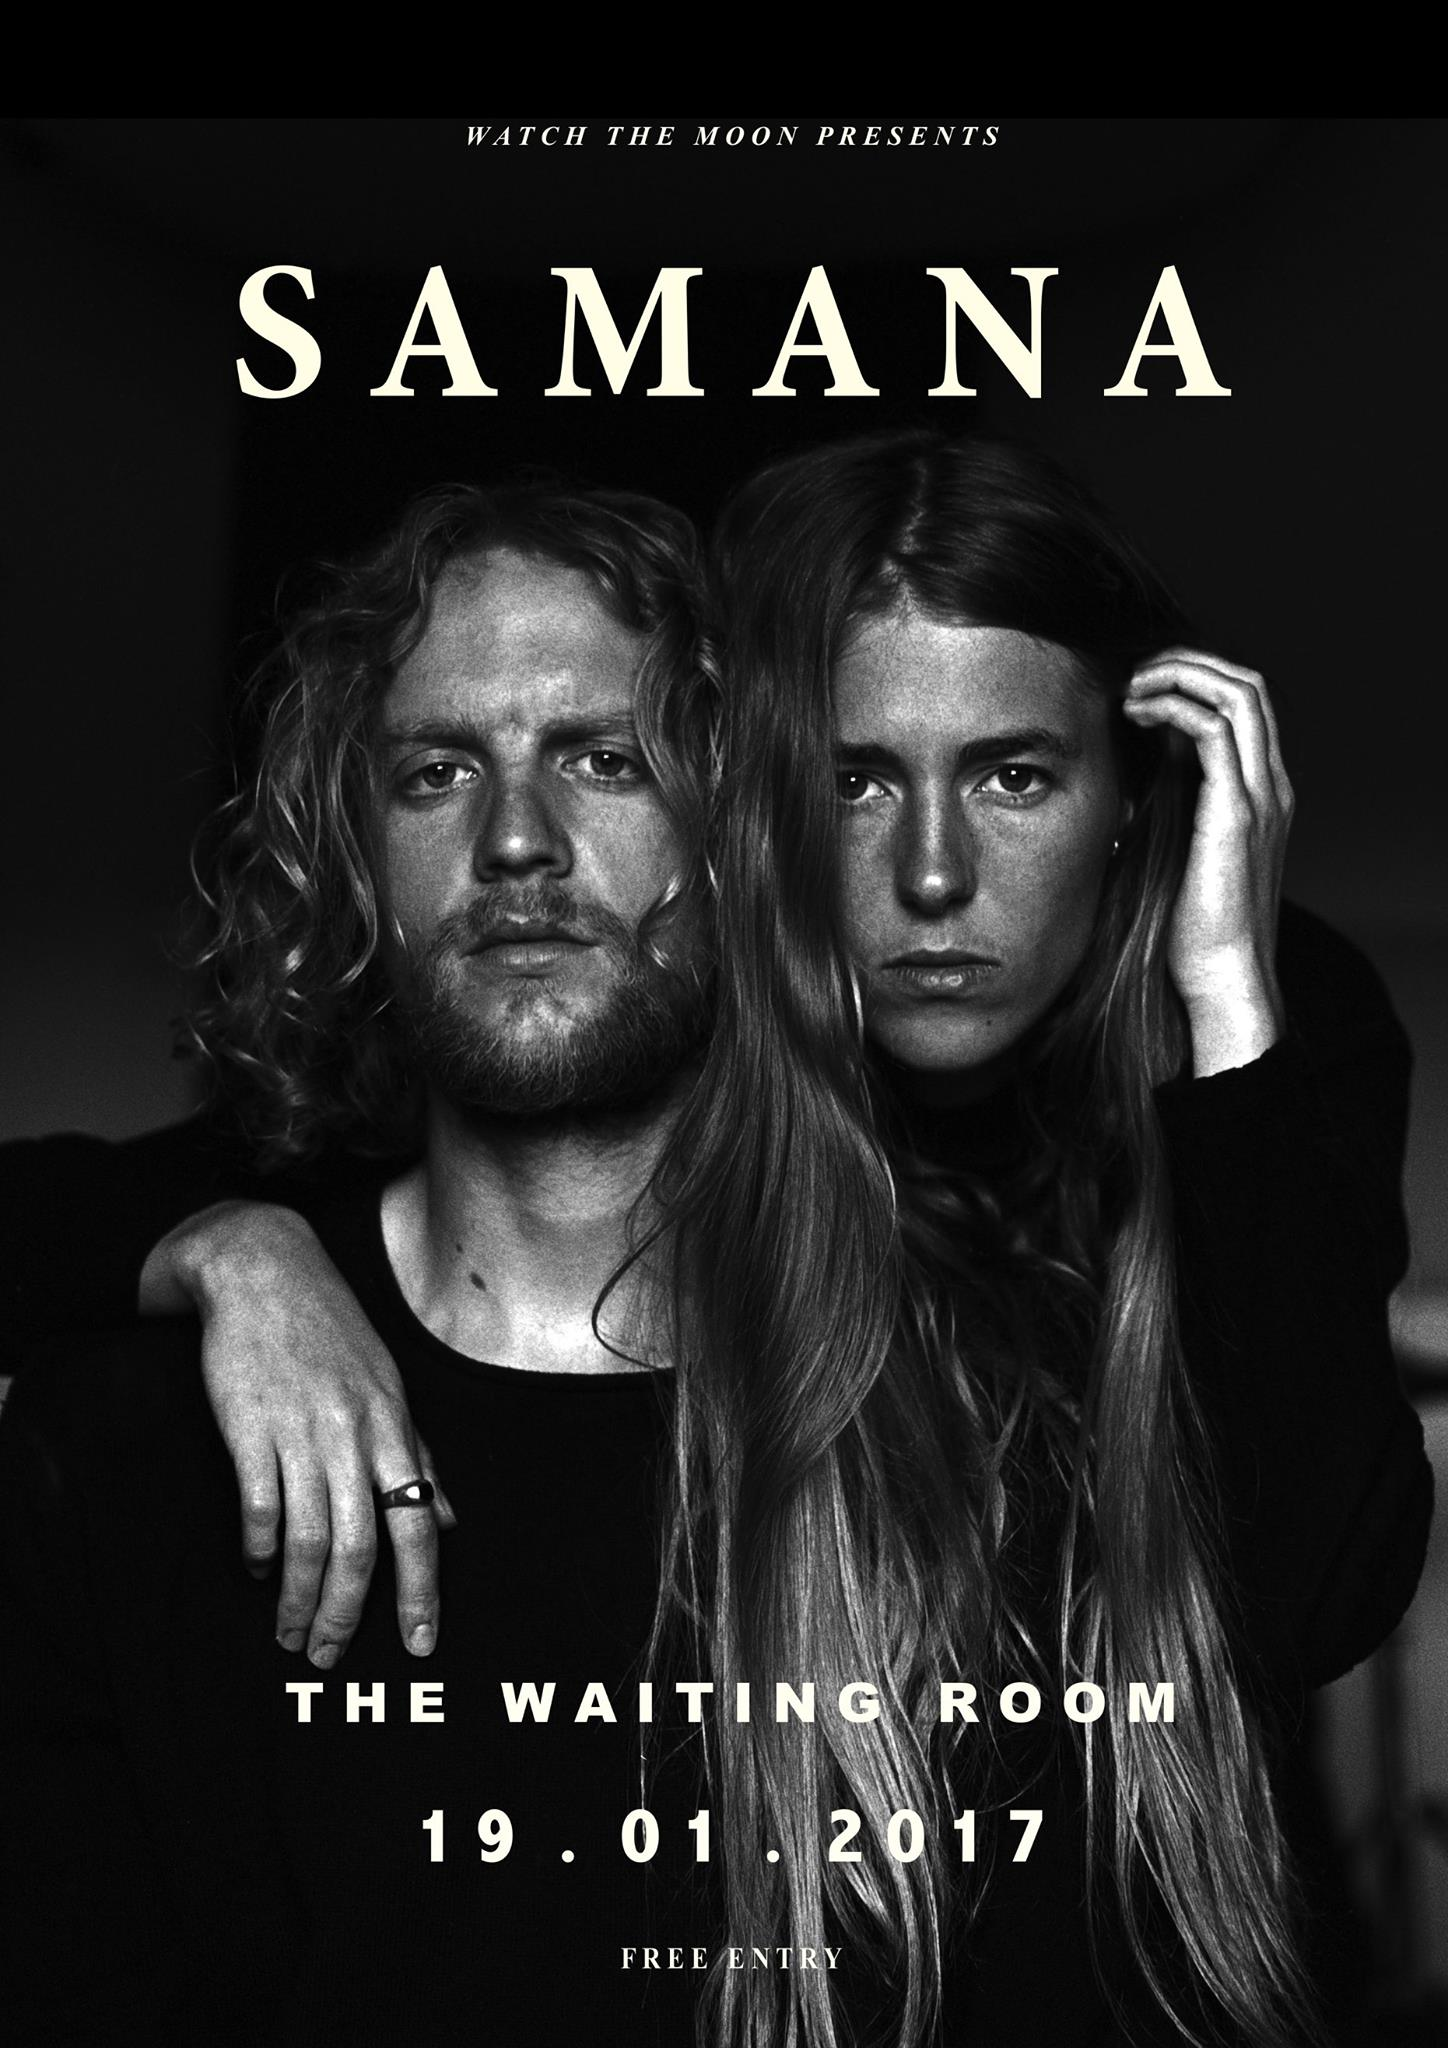 Samana Poster - Watch The Moon